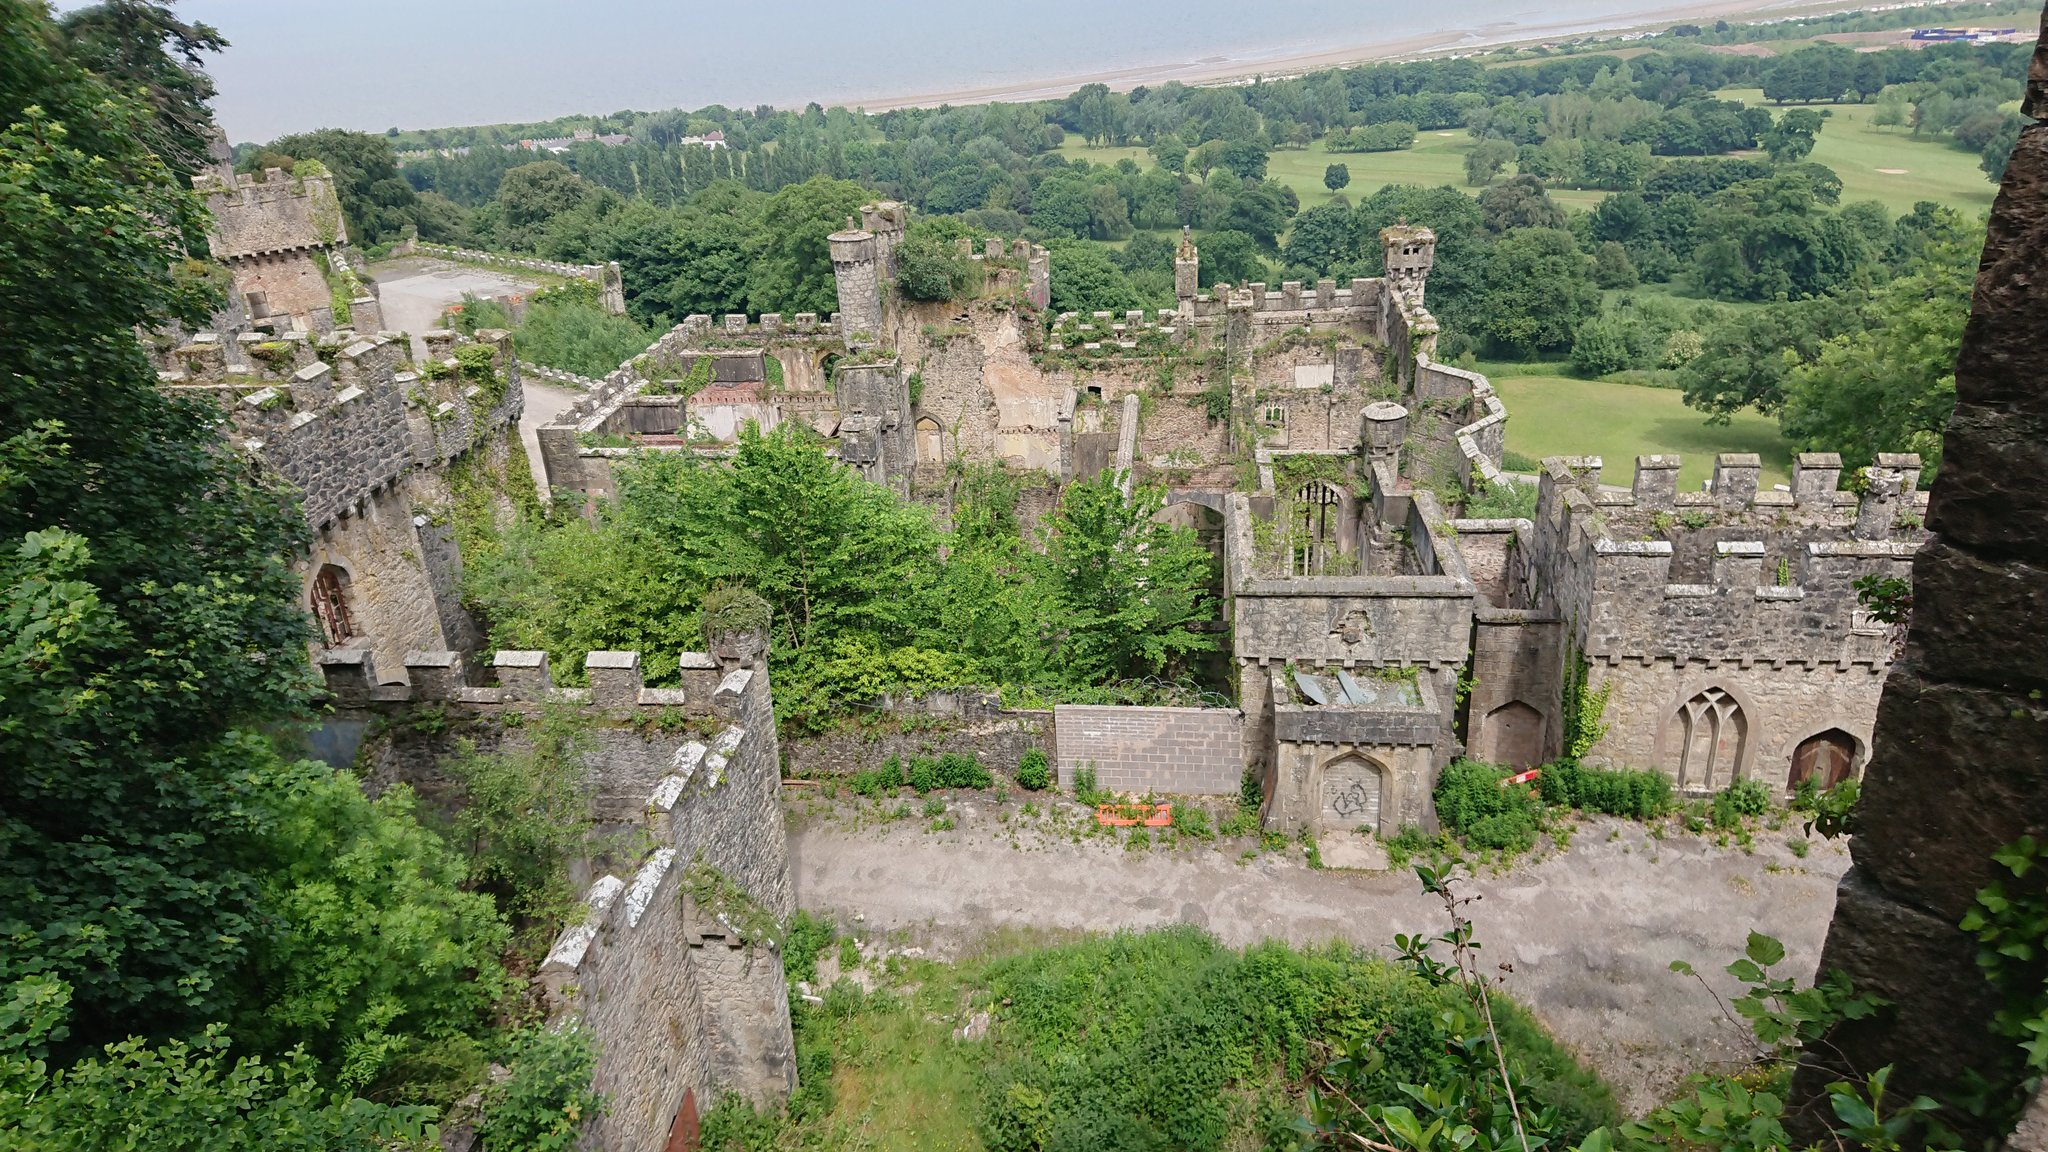 File:Gwrych Castle view 2.jpg - Wikimedia Commons